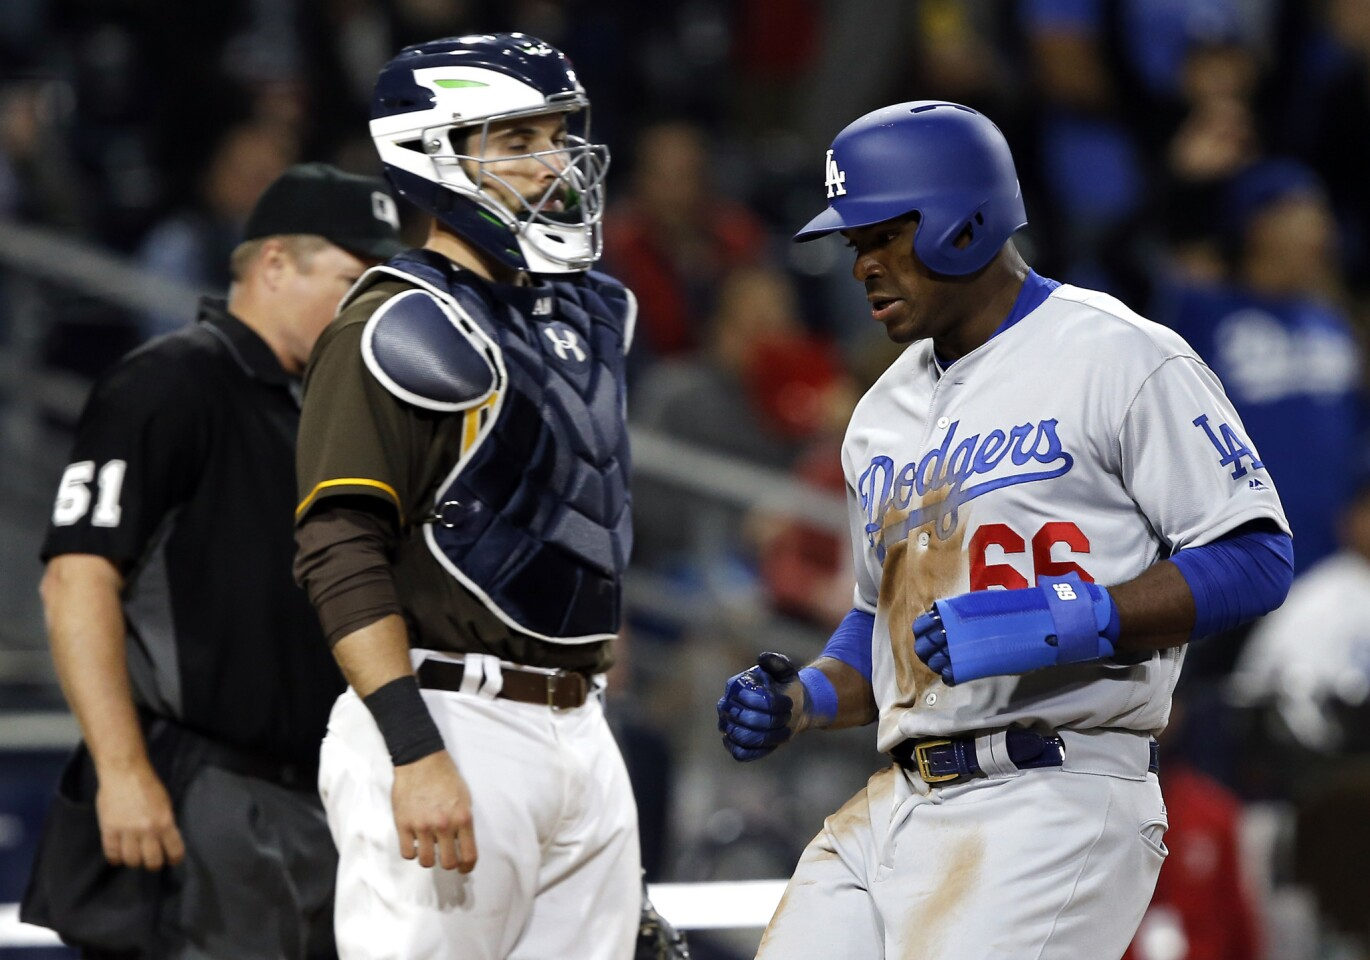 Los Angeles Dodgers' Yasiel Puig, right, scores in front of San Diego Padres catcher Austin Hedges on an infield single by Chris Taylor during the eighth inning of a baseball game in San Diego, Friday, May 5, 2017. (AP Photo/Alex Gallardo)